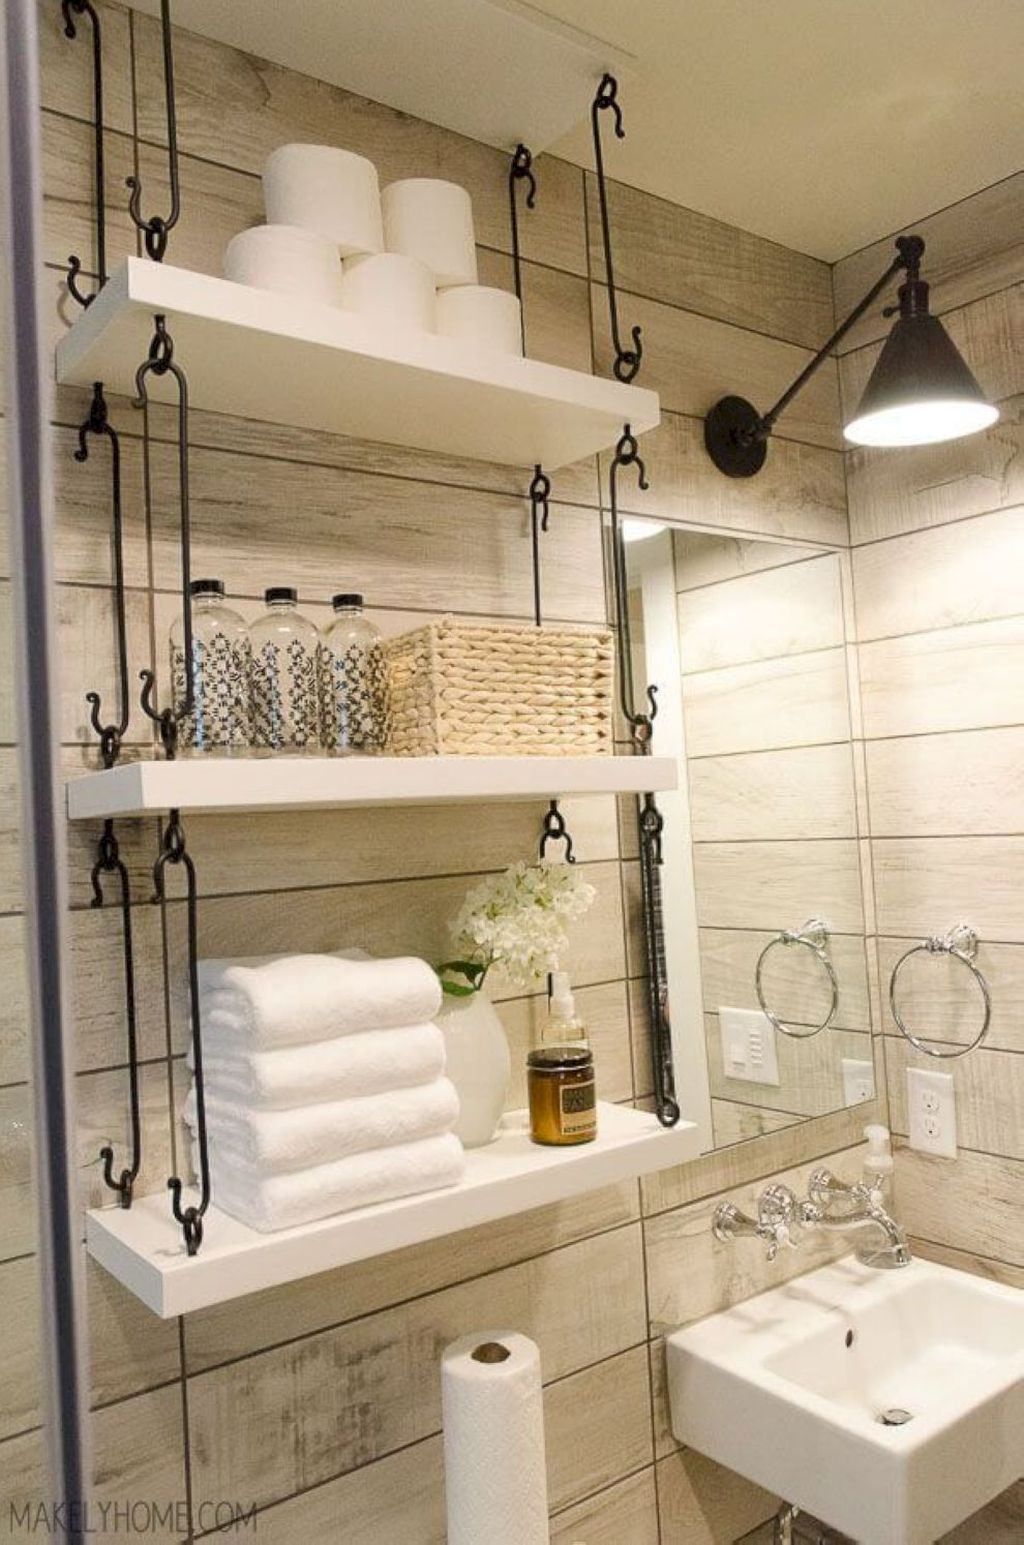 Creative Practical Bathroom Storage Design Ideas40